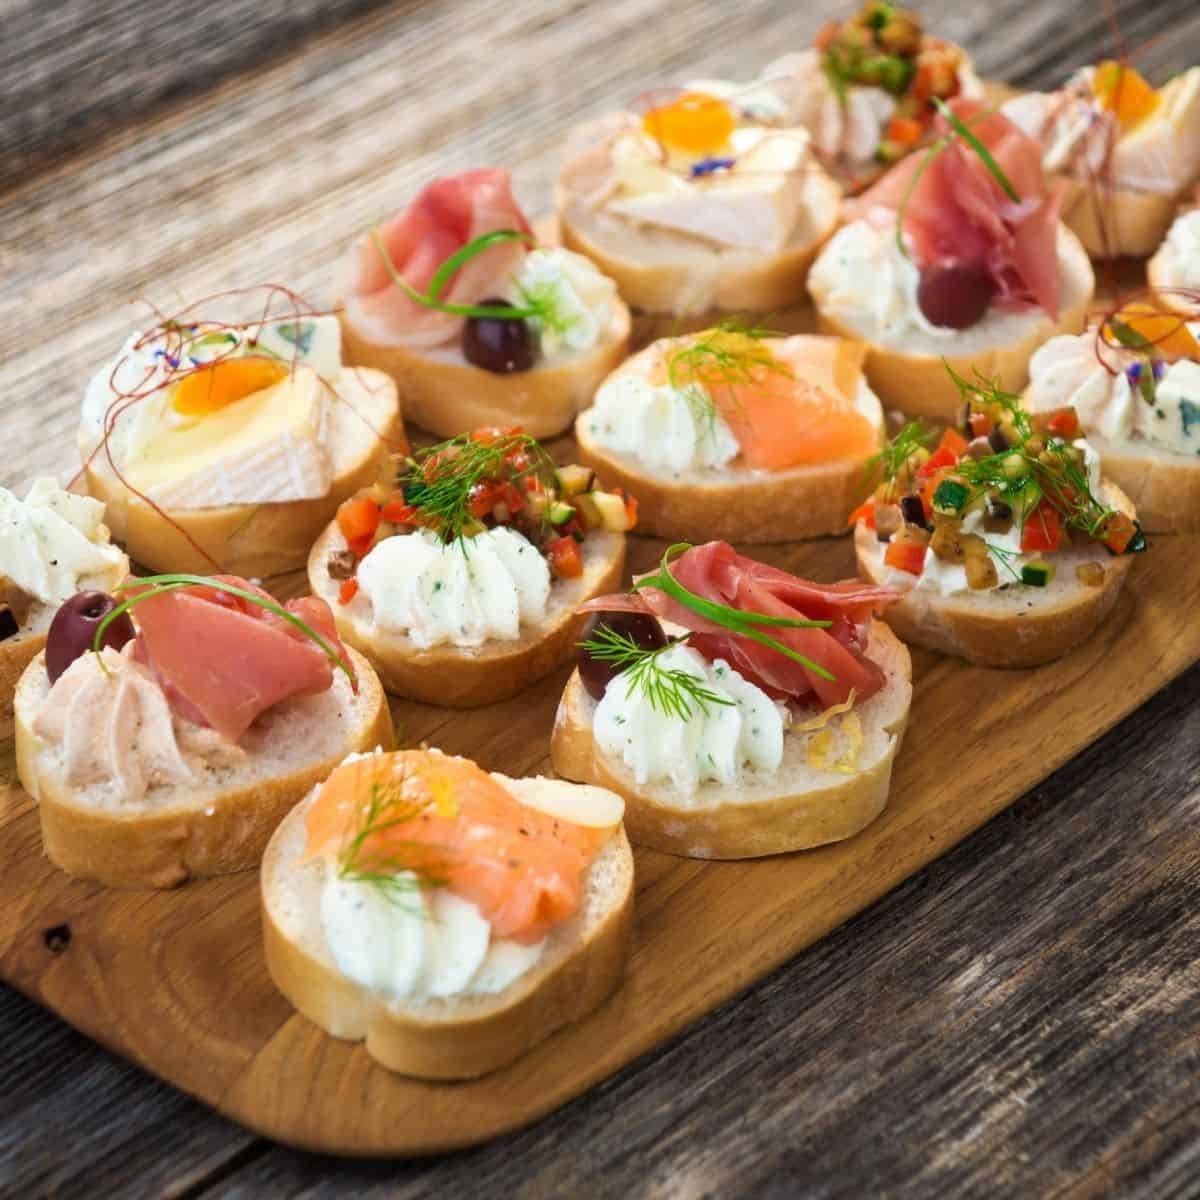 a selection of party finger food appetizers on a wooden board.